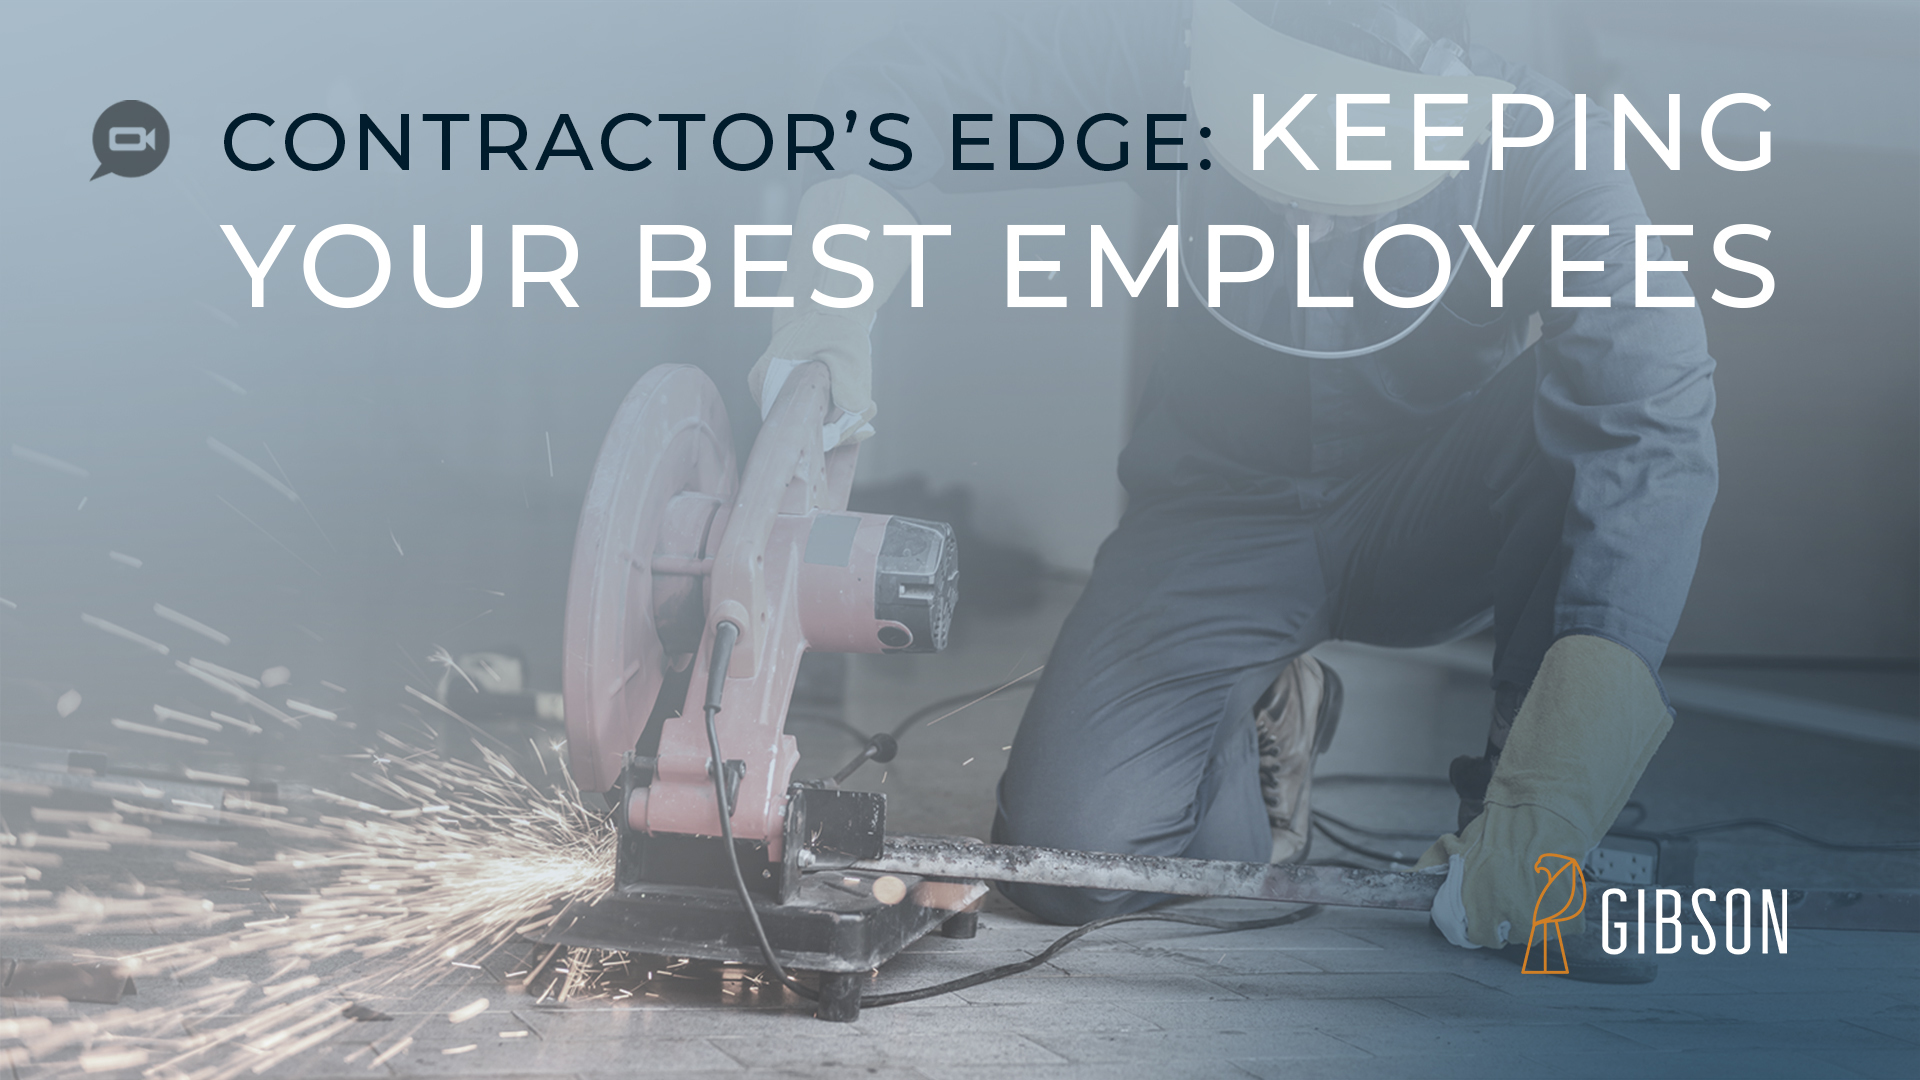 Contractors Edge Keeping your Best Employees